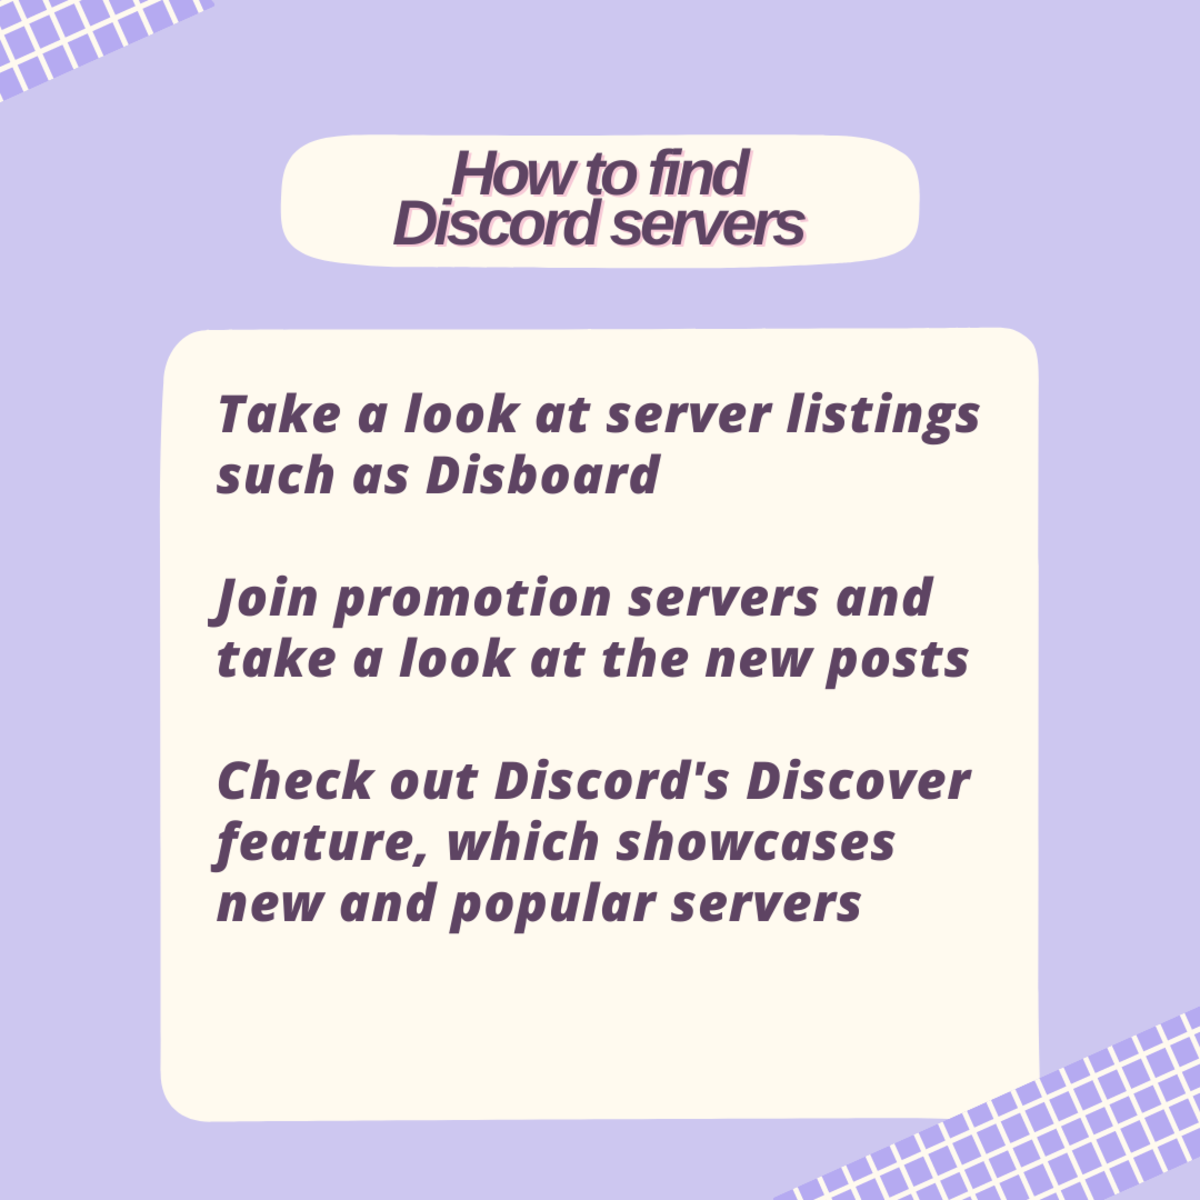 Here are some ways to find Discord servers!